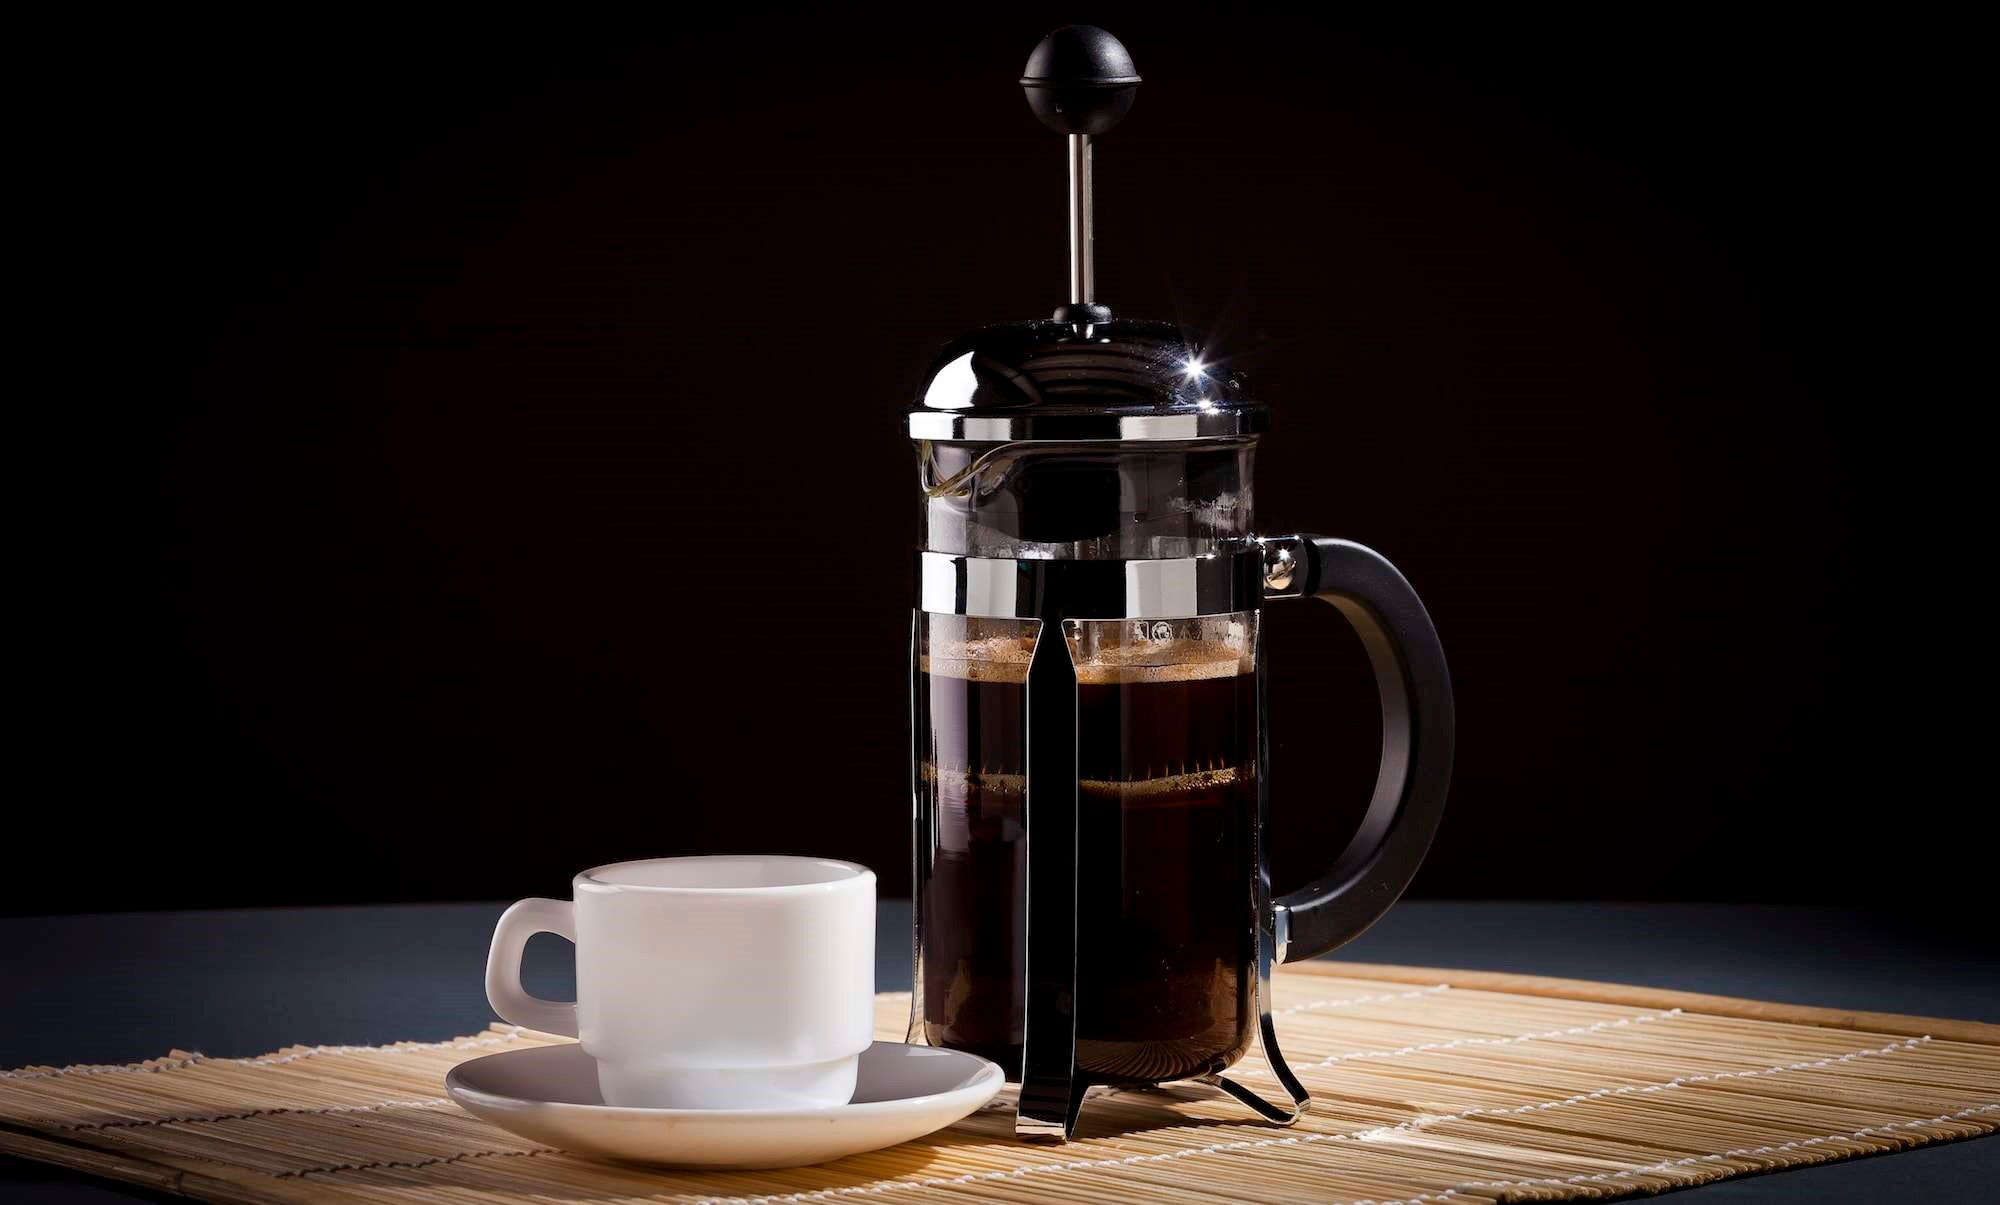 EVERYTHING YOU NEED TO KNOW ABOUT FRENCH PRESS COFFEE